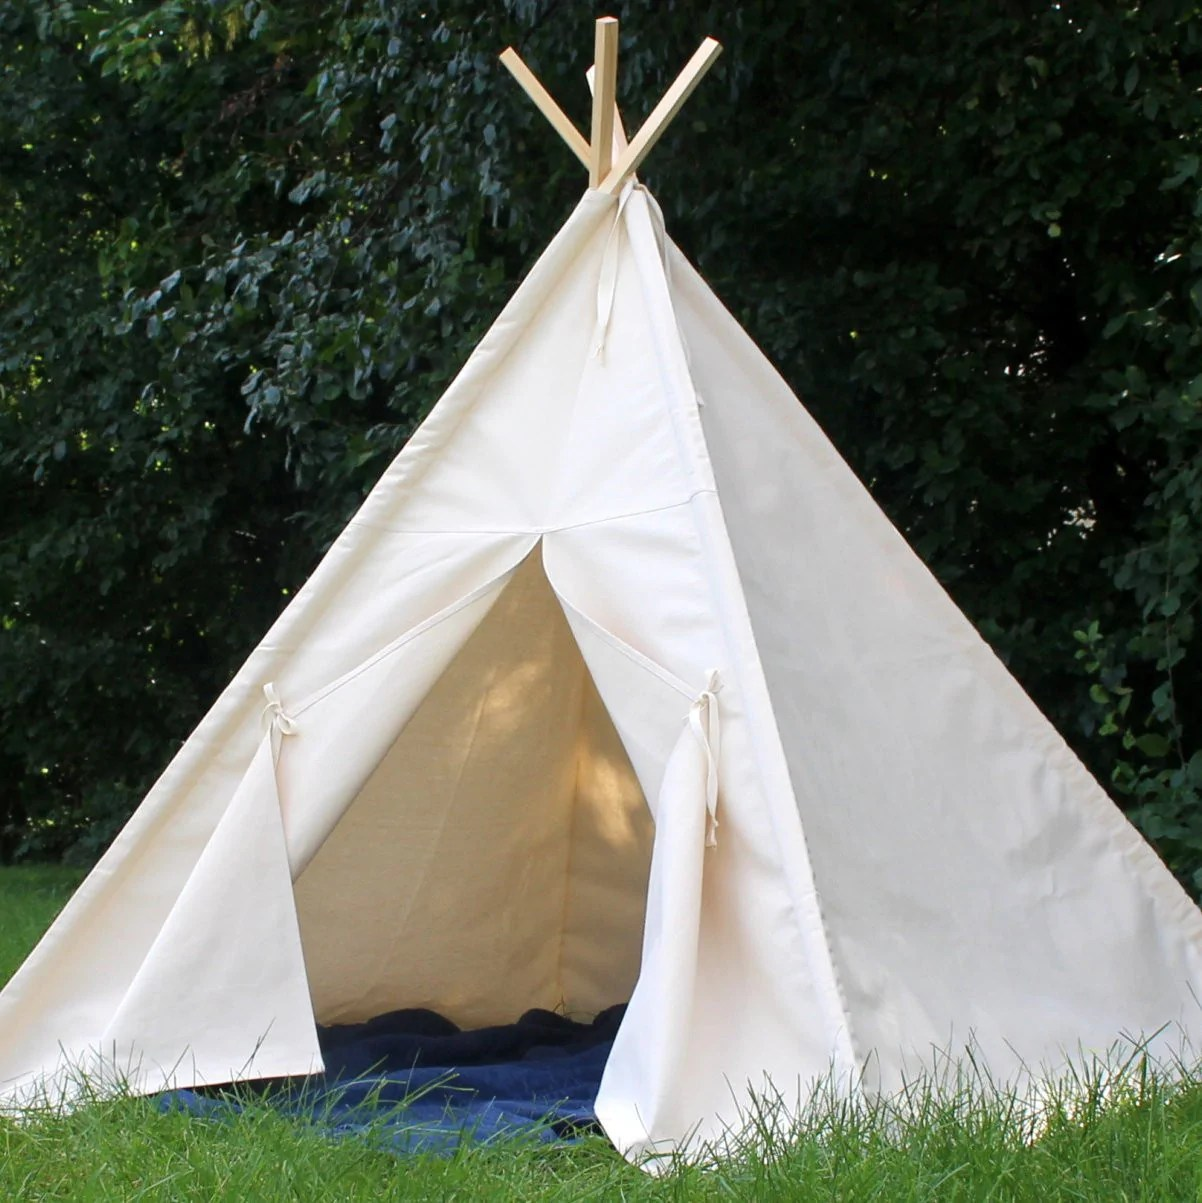 Relaxing Kids Canvas Teepee Can Include A Two Sizes Teepee Canvas Play Teepee Kids Clearance Amazon Teepee Kids houzz-03 Teepee For Kids